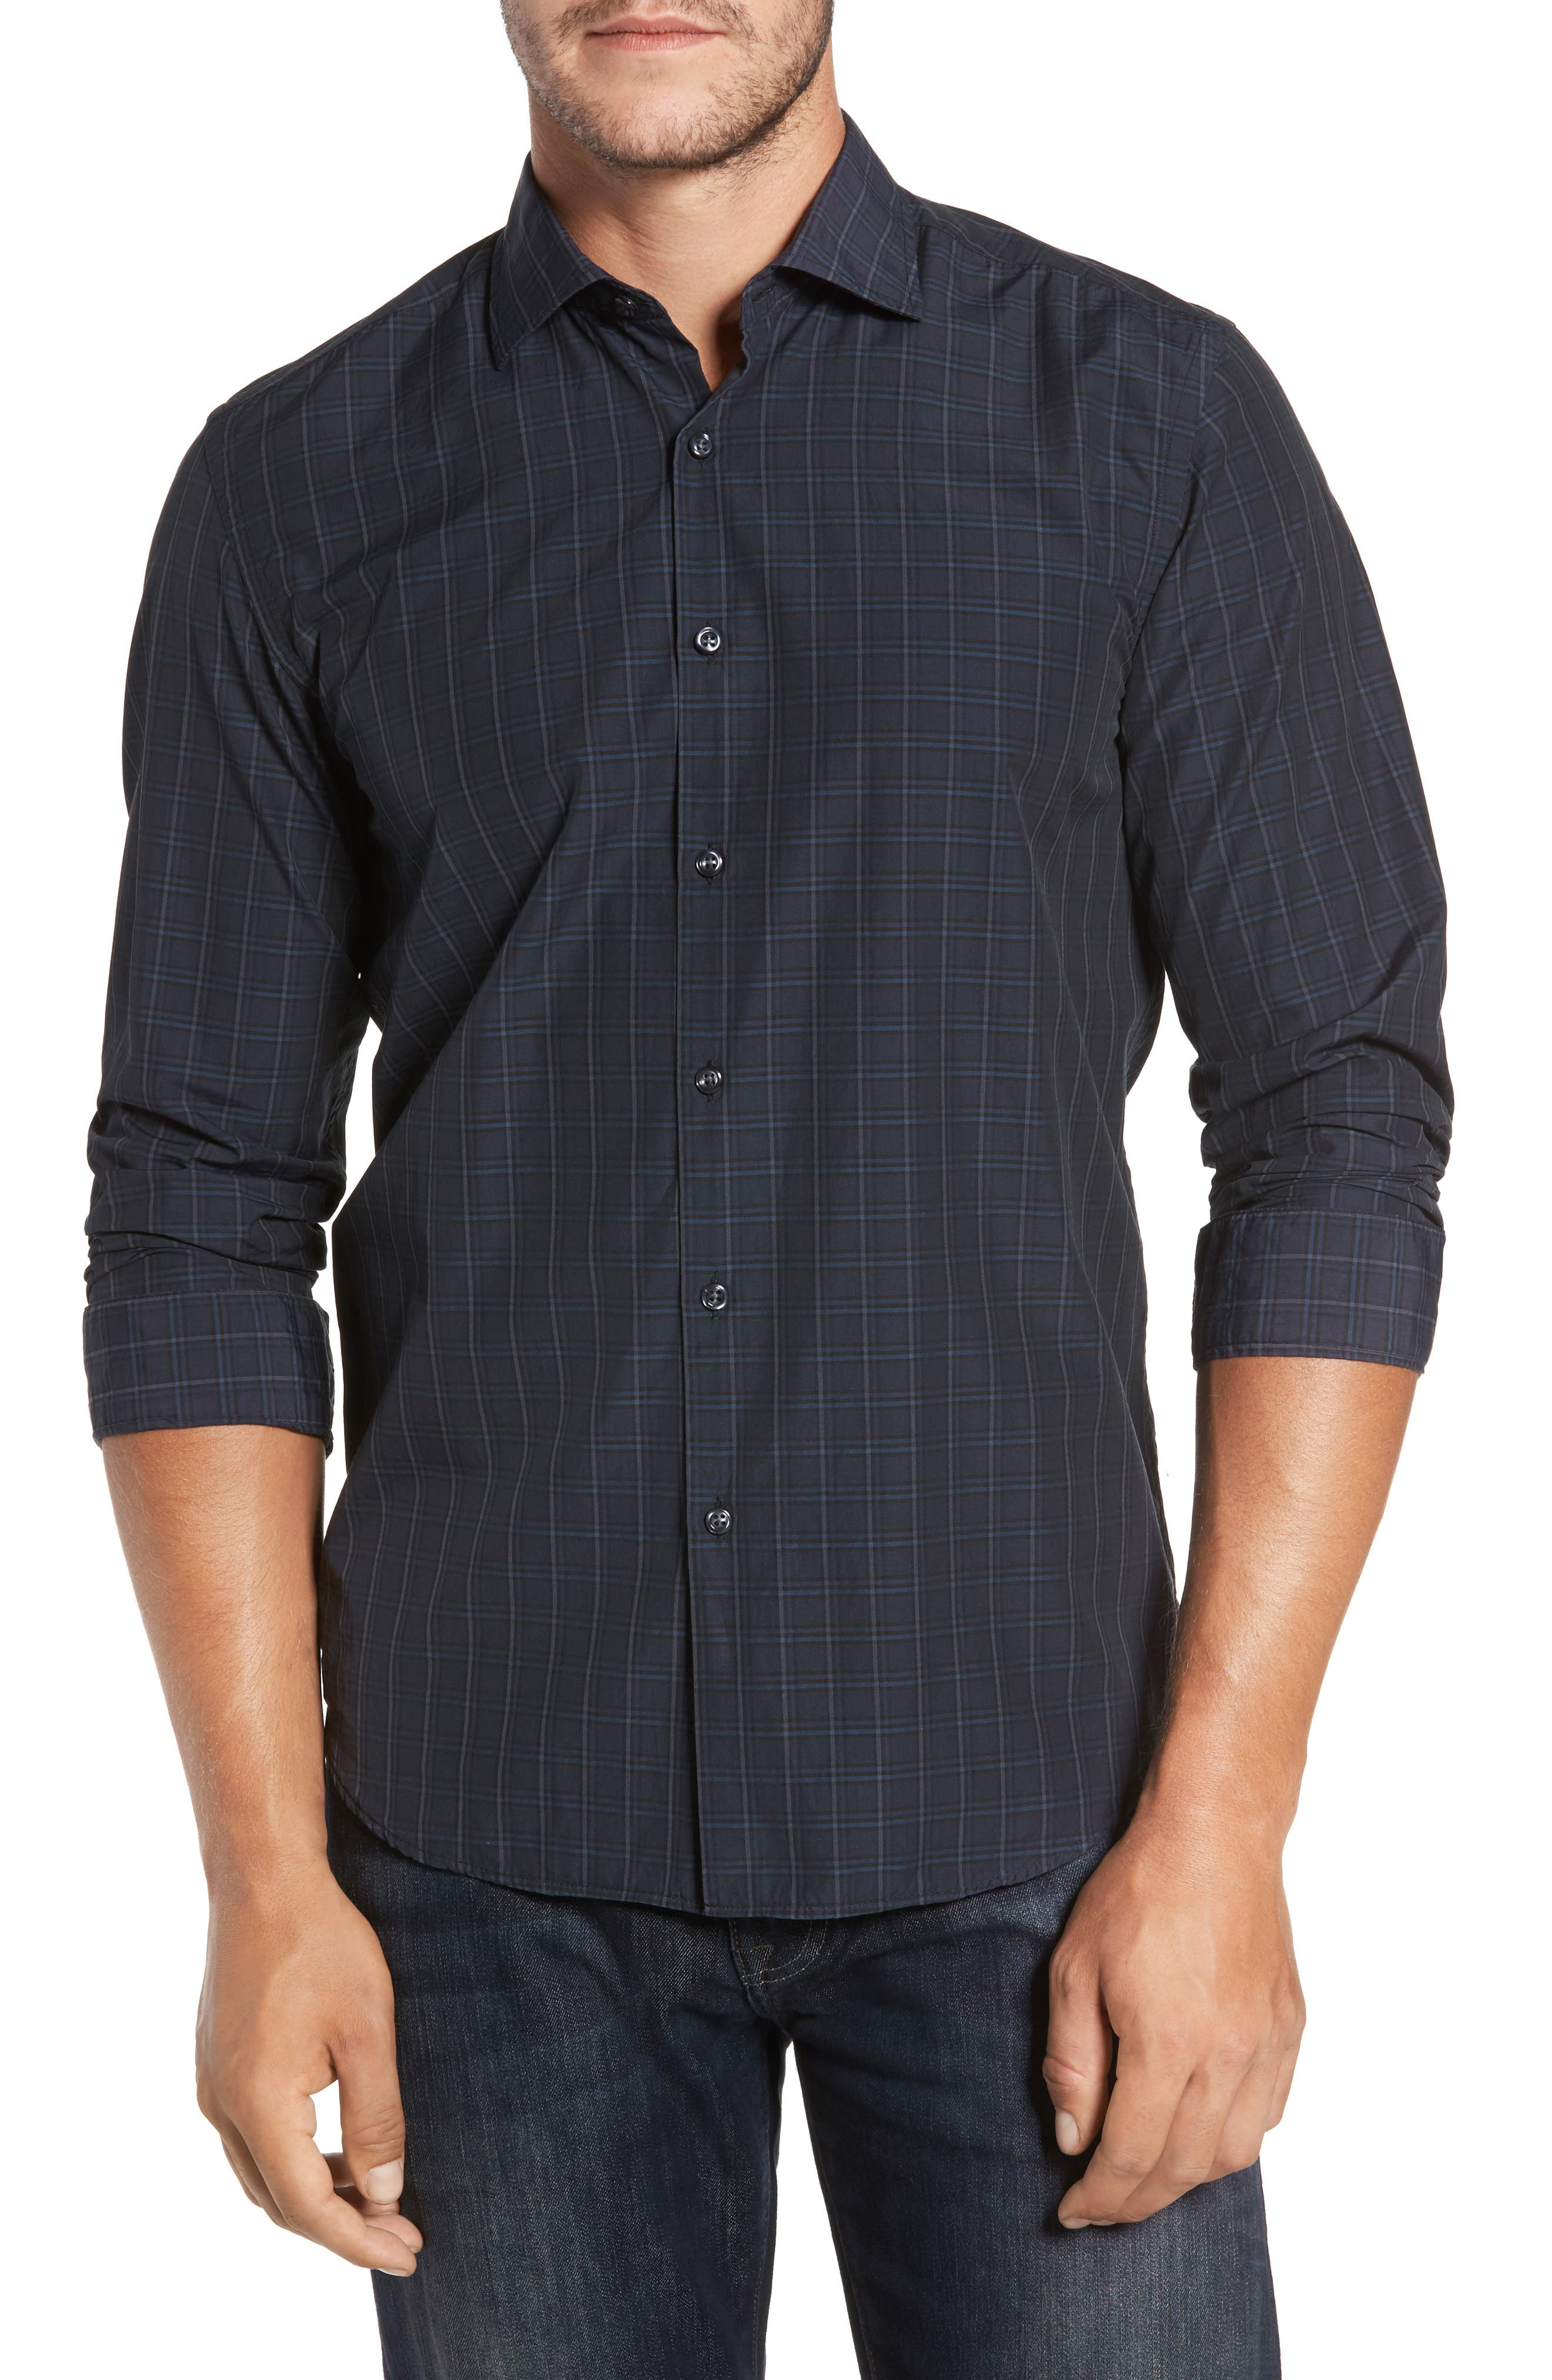 Robert Barakett Charleston Regular Fit Plaid Sport Shirt